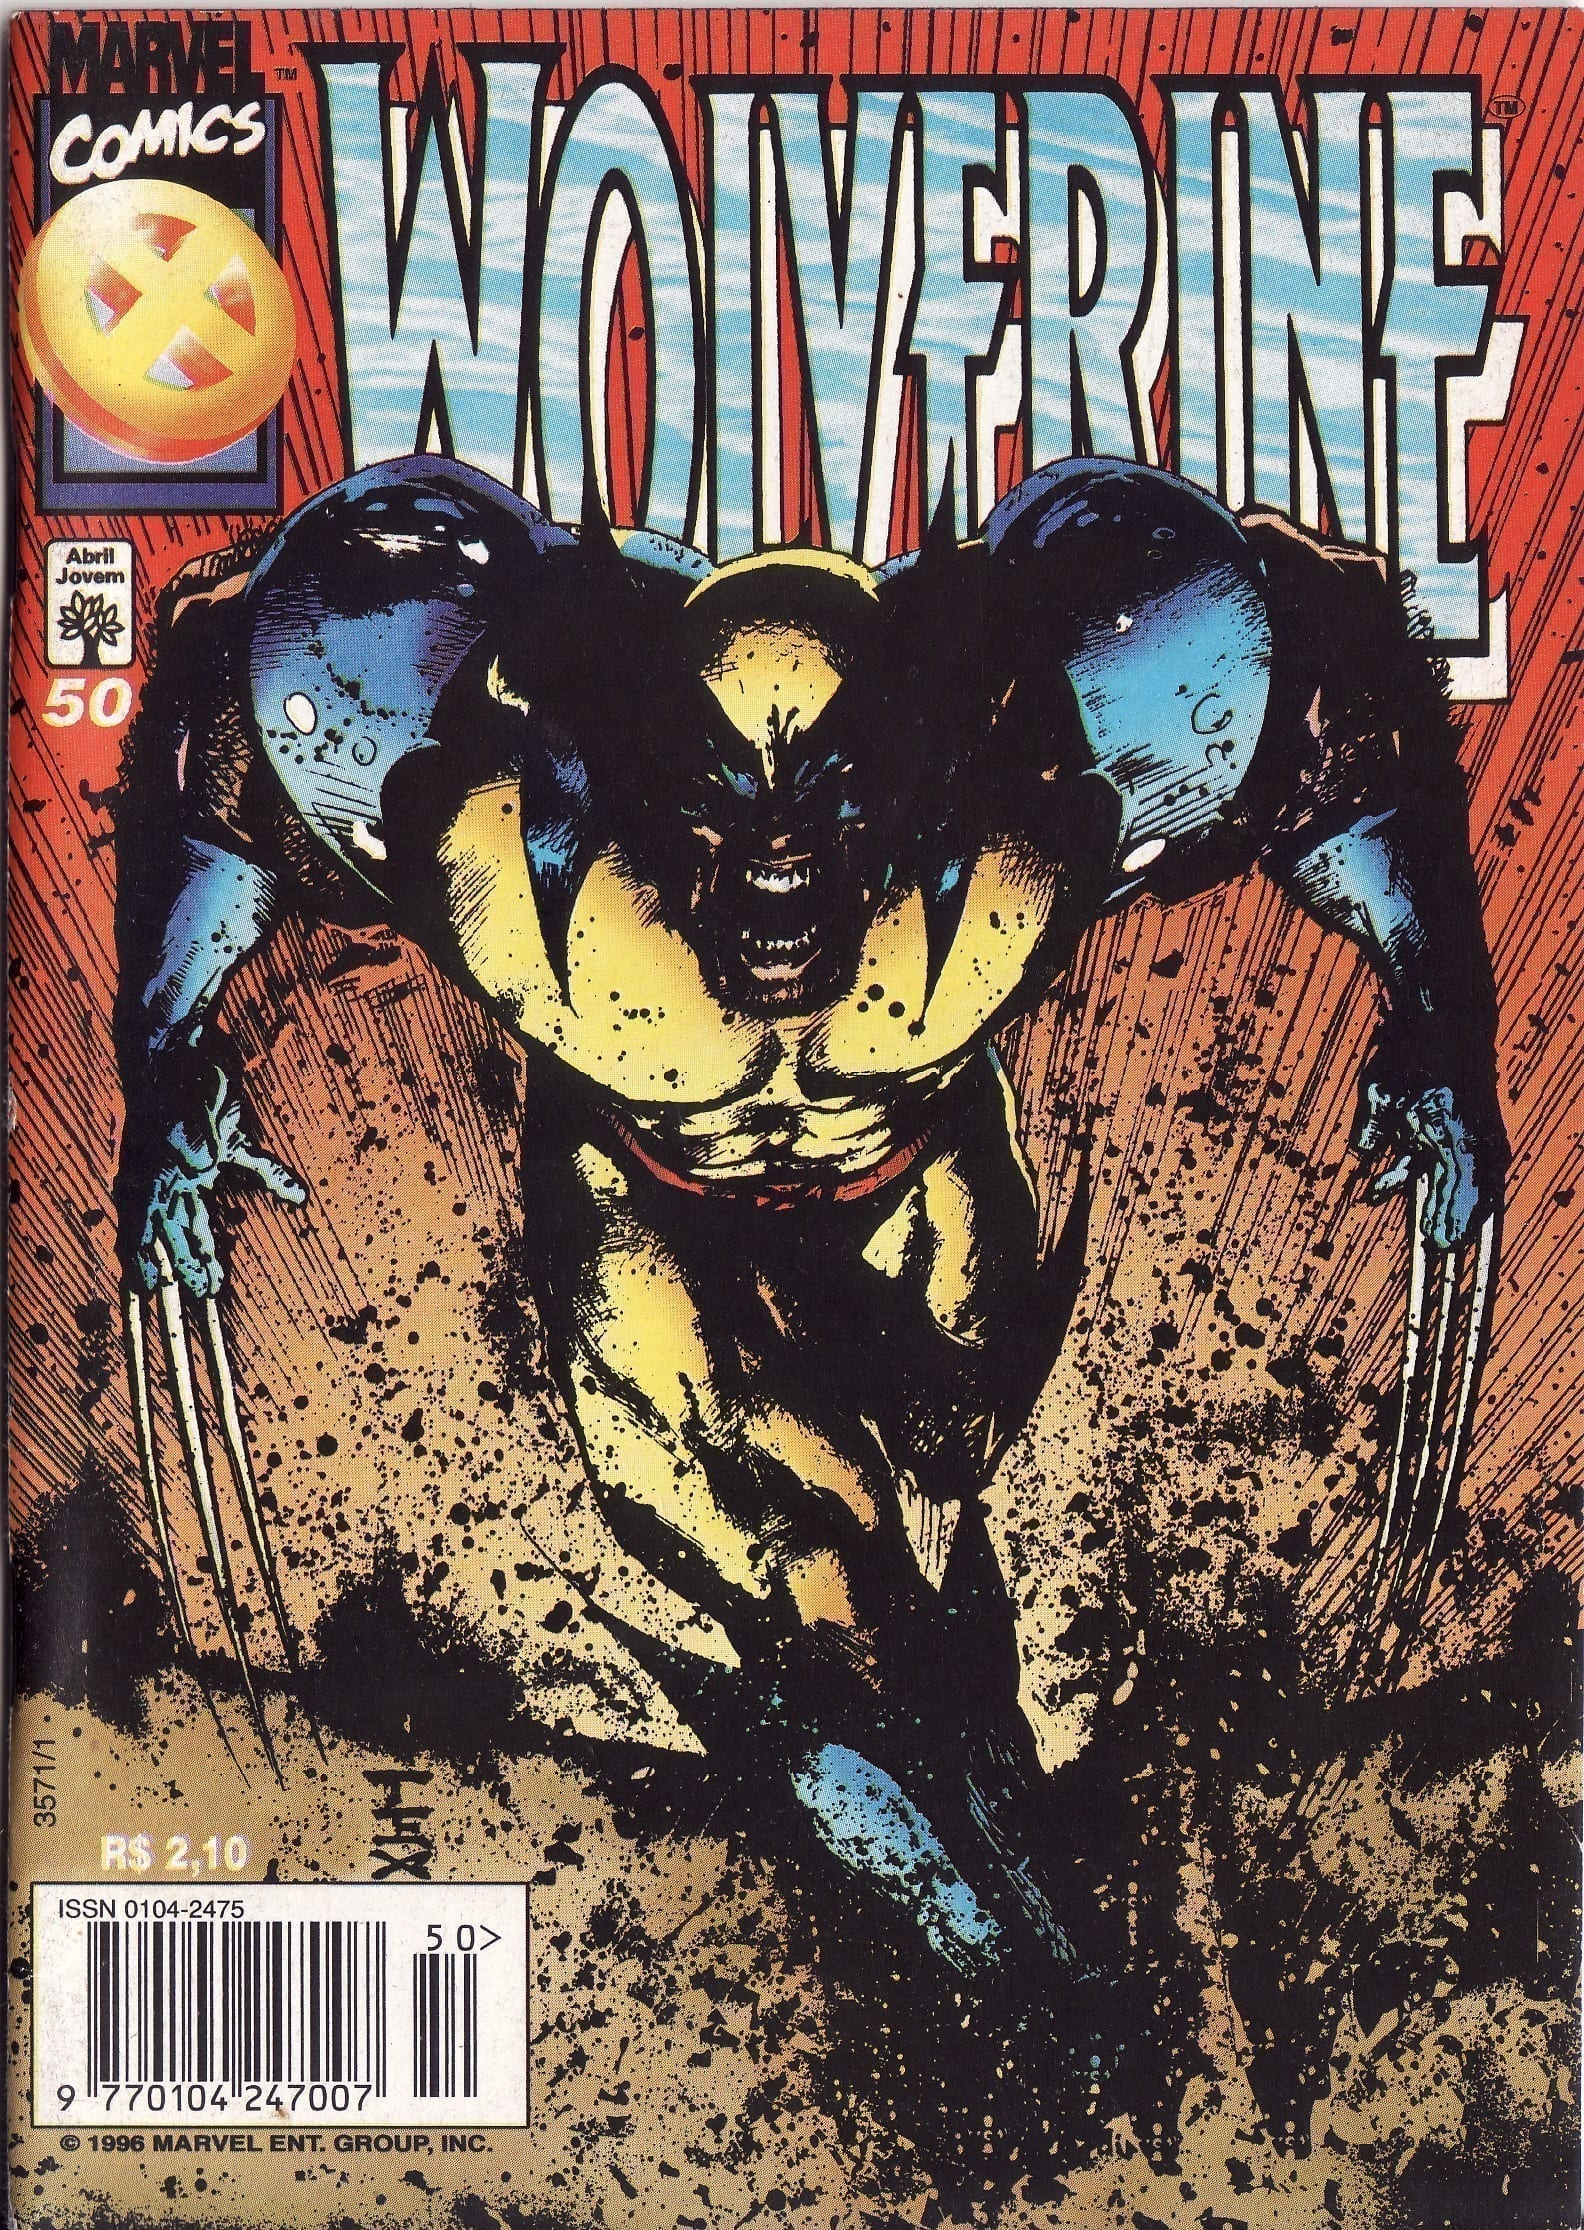 Capa: Wolverine Abril 50